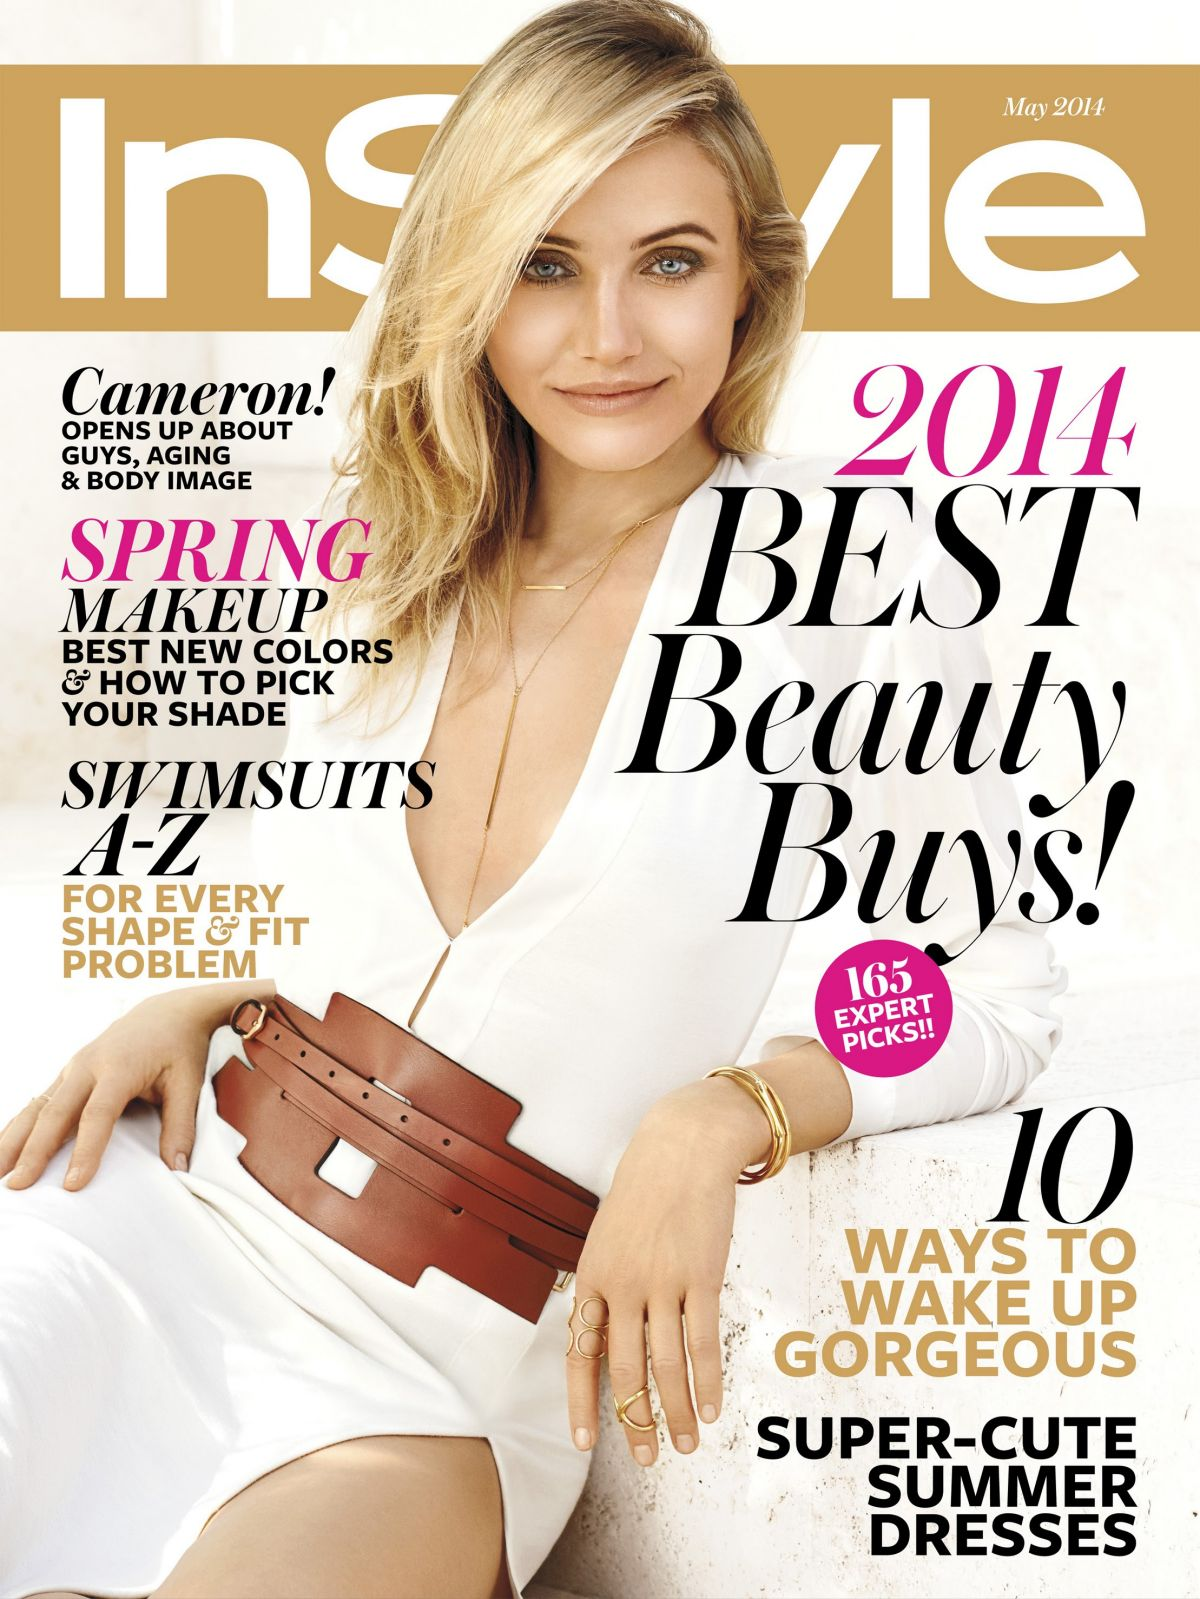 Instyle Magazine Us: CAMERON DIAZ In Instyle Magazine, May 2014 Issue